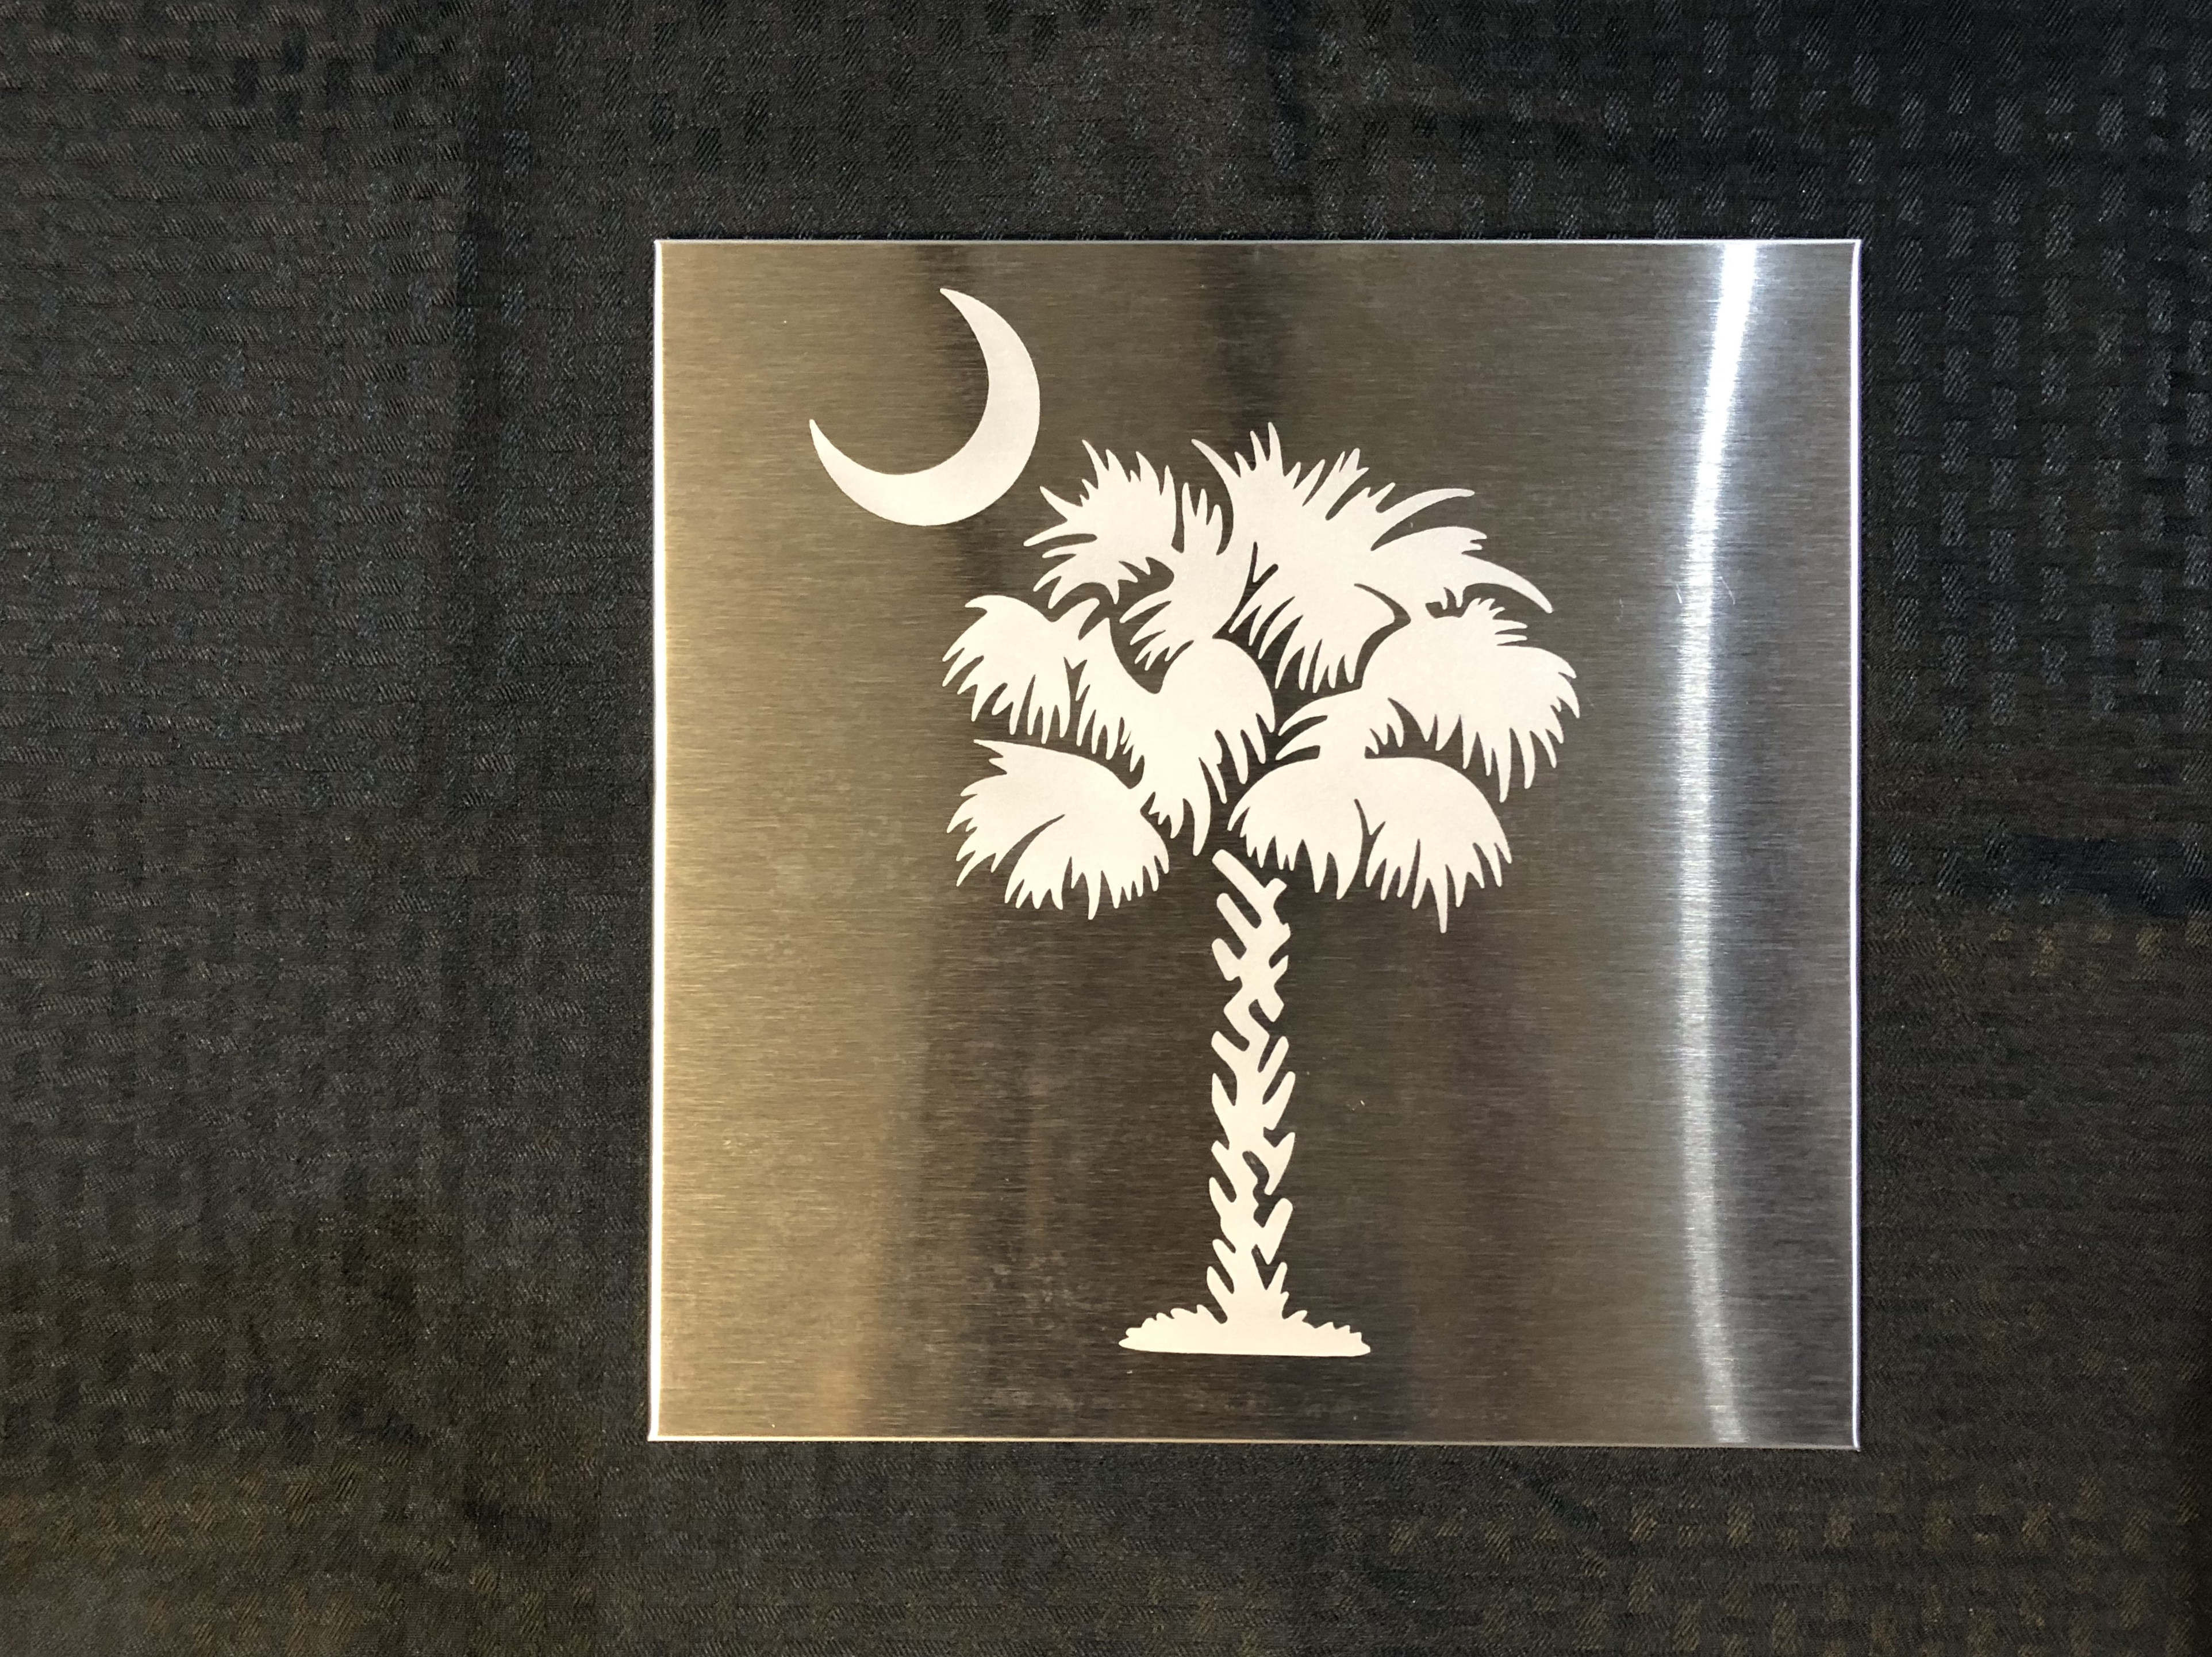 Stainless Steel Tile Art Work